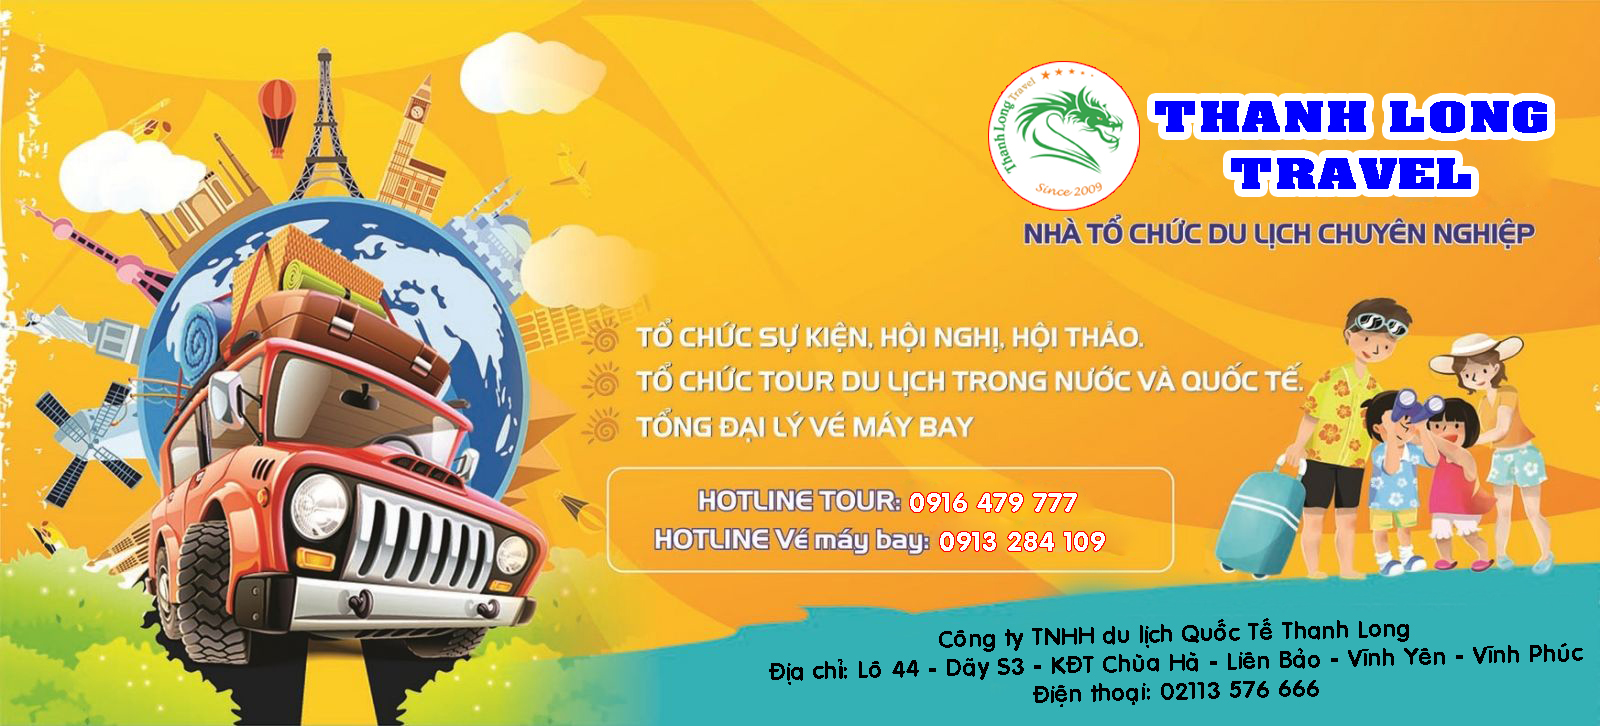 THANH LONG TRAVEL